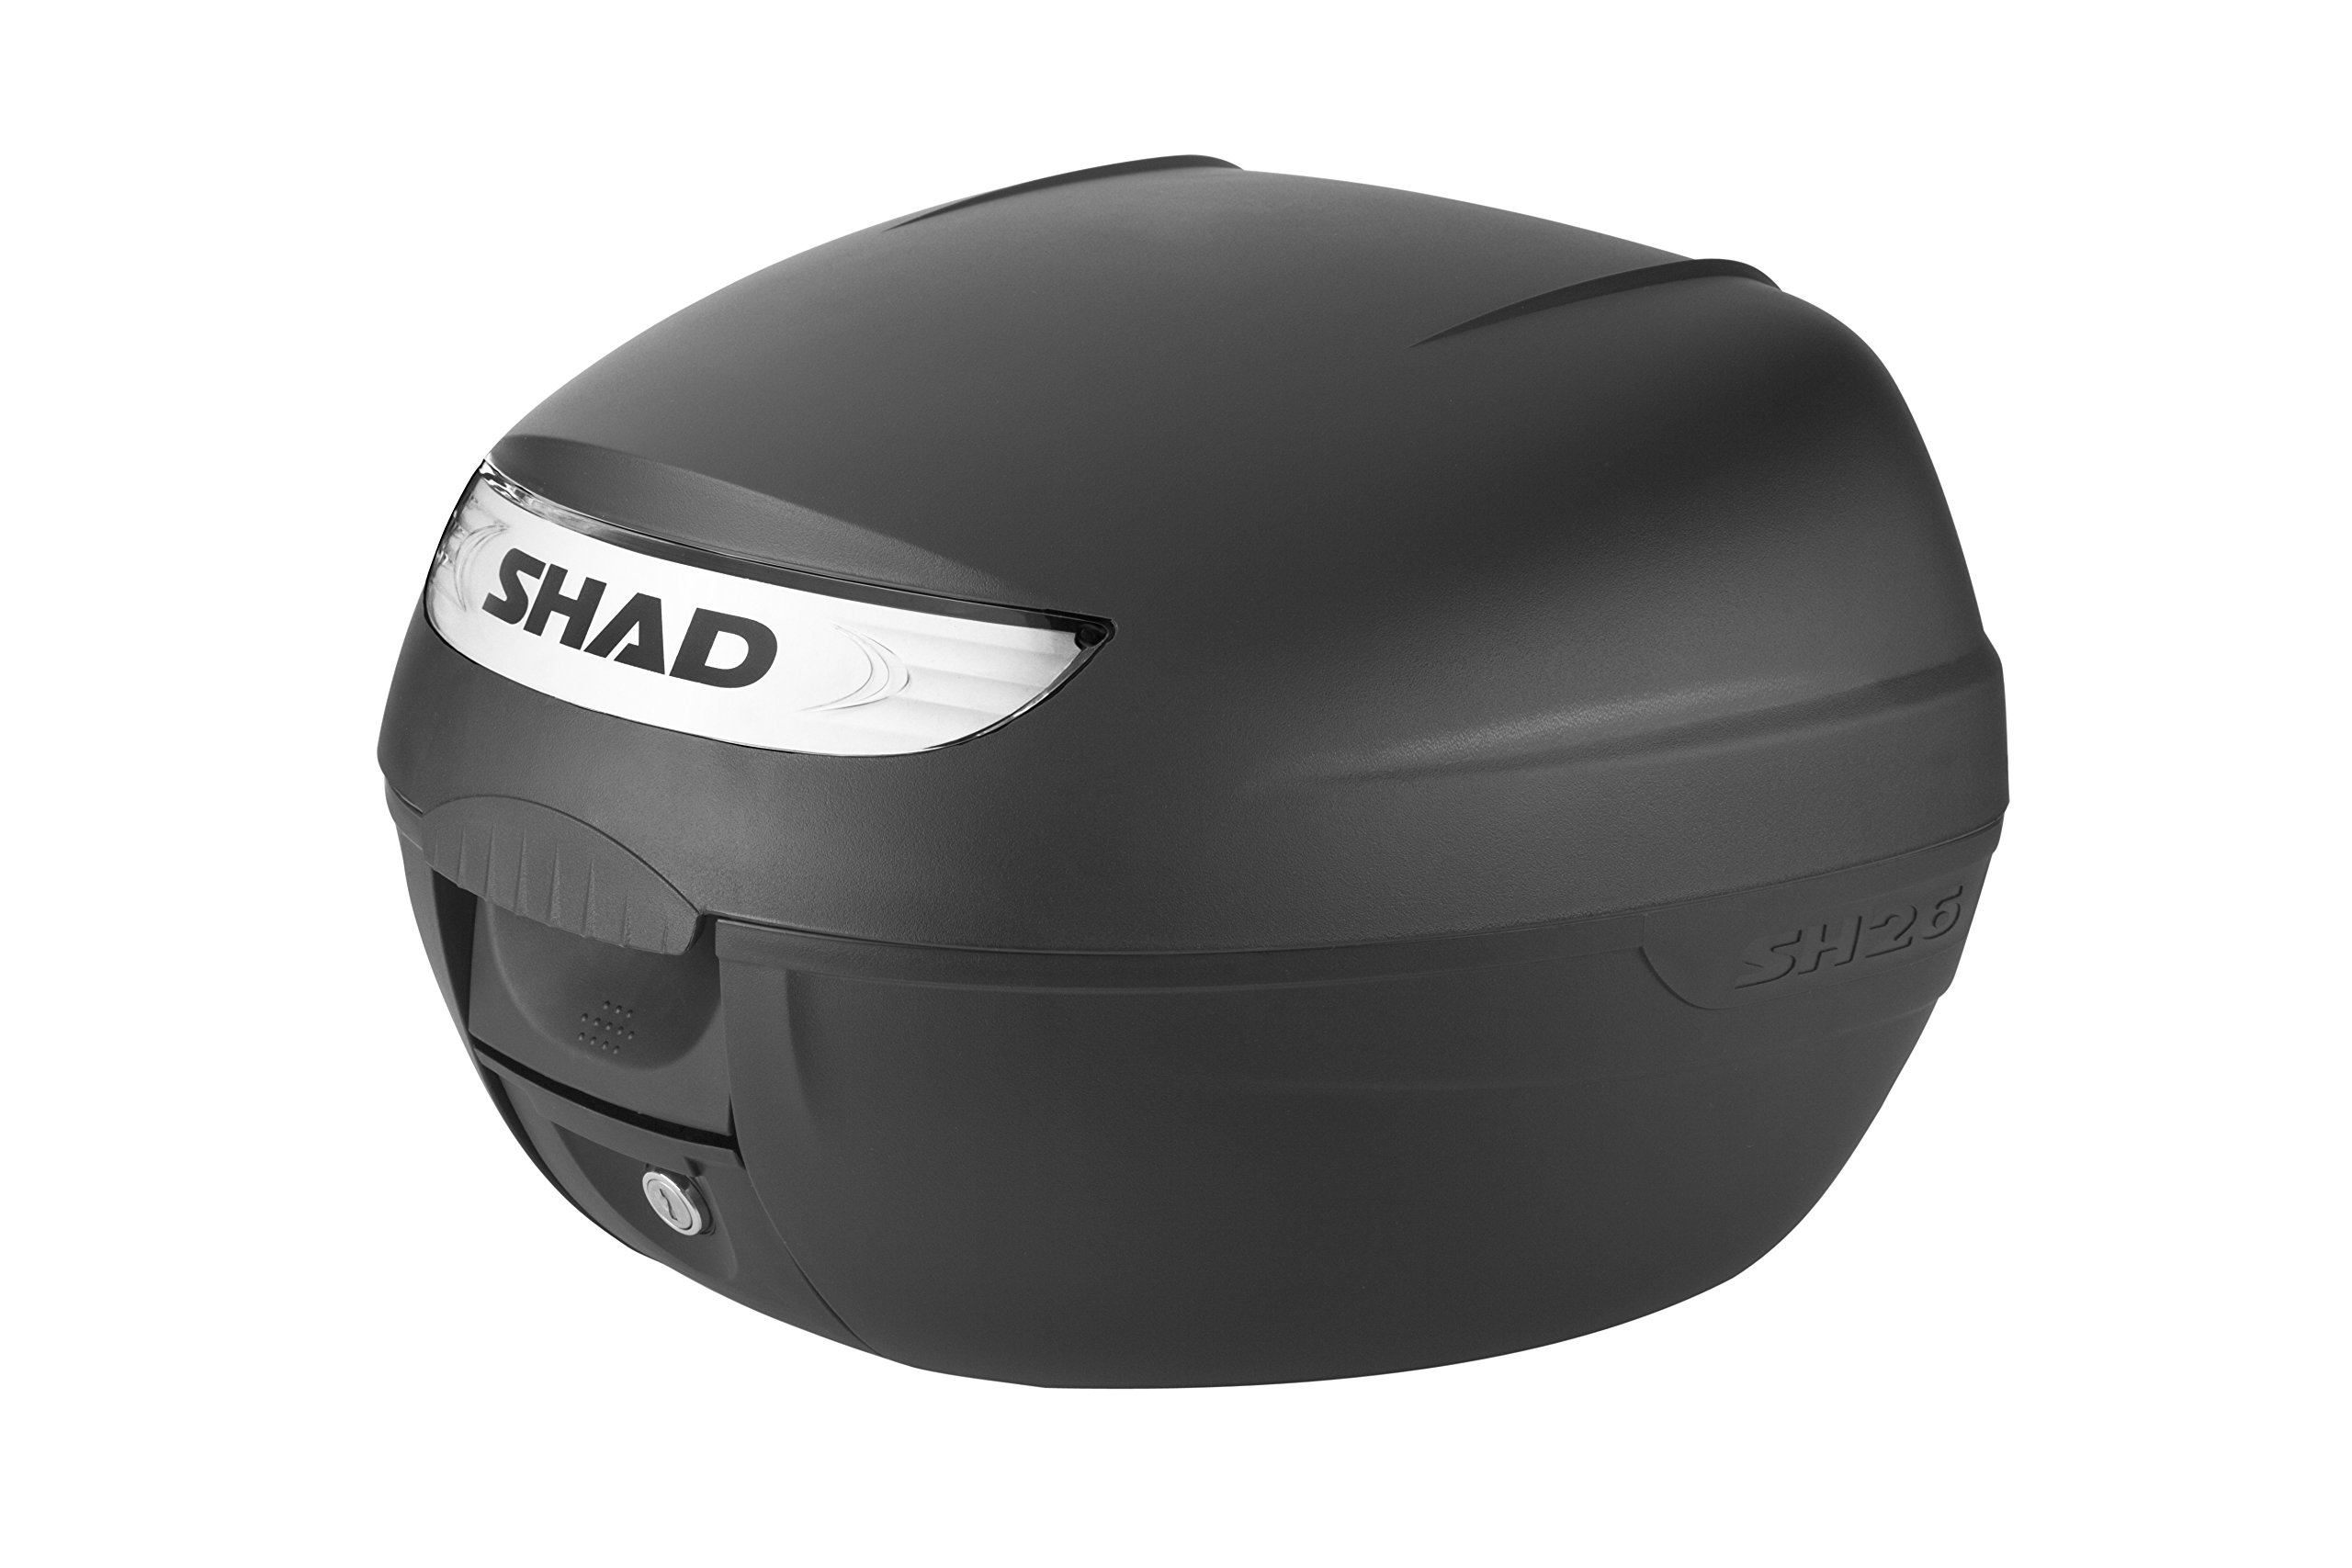 SHAD SH26 Top Case by SHAD